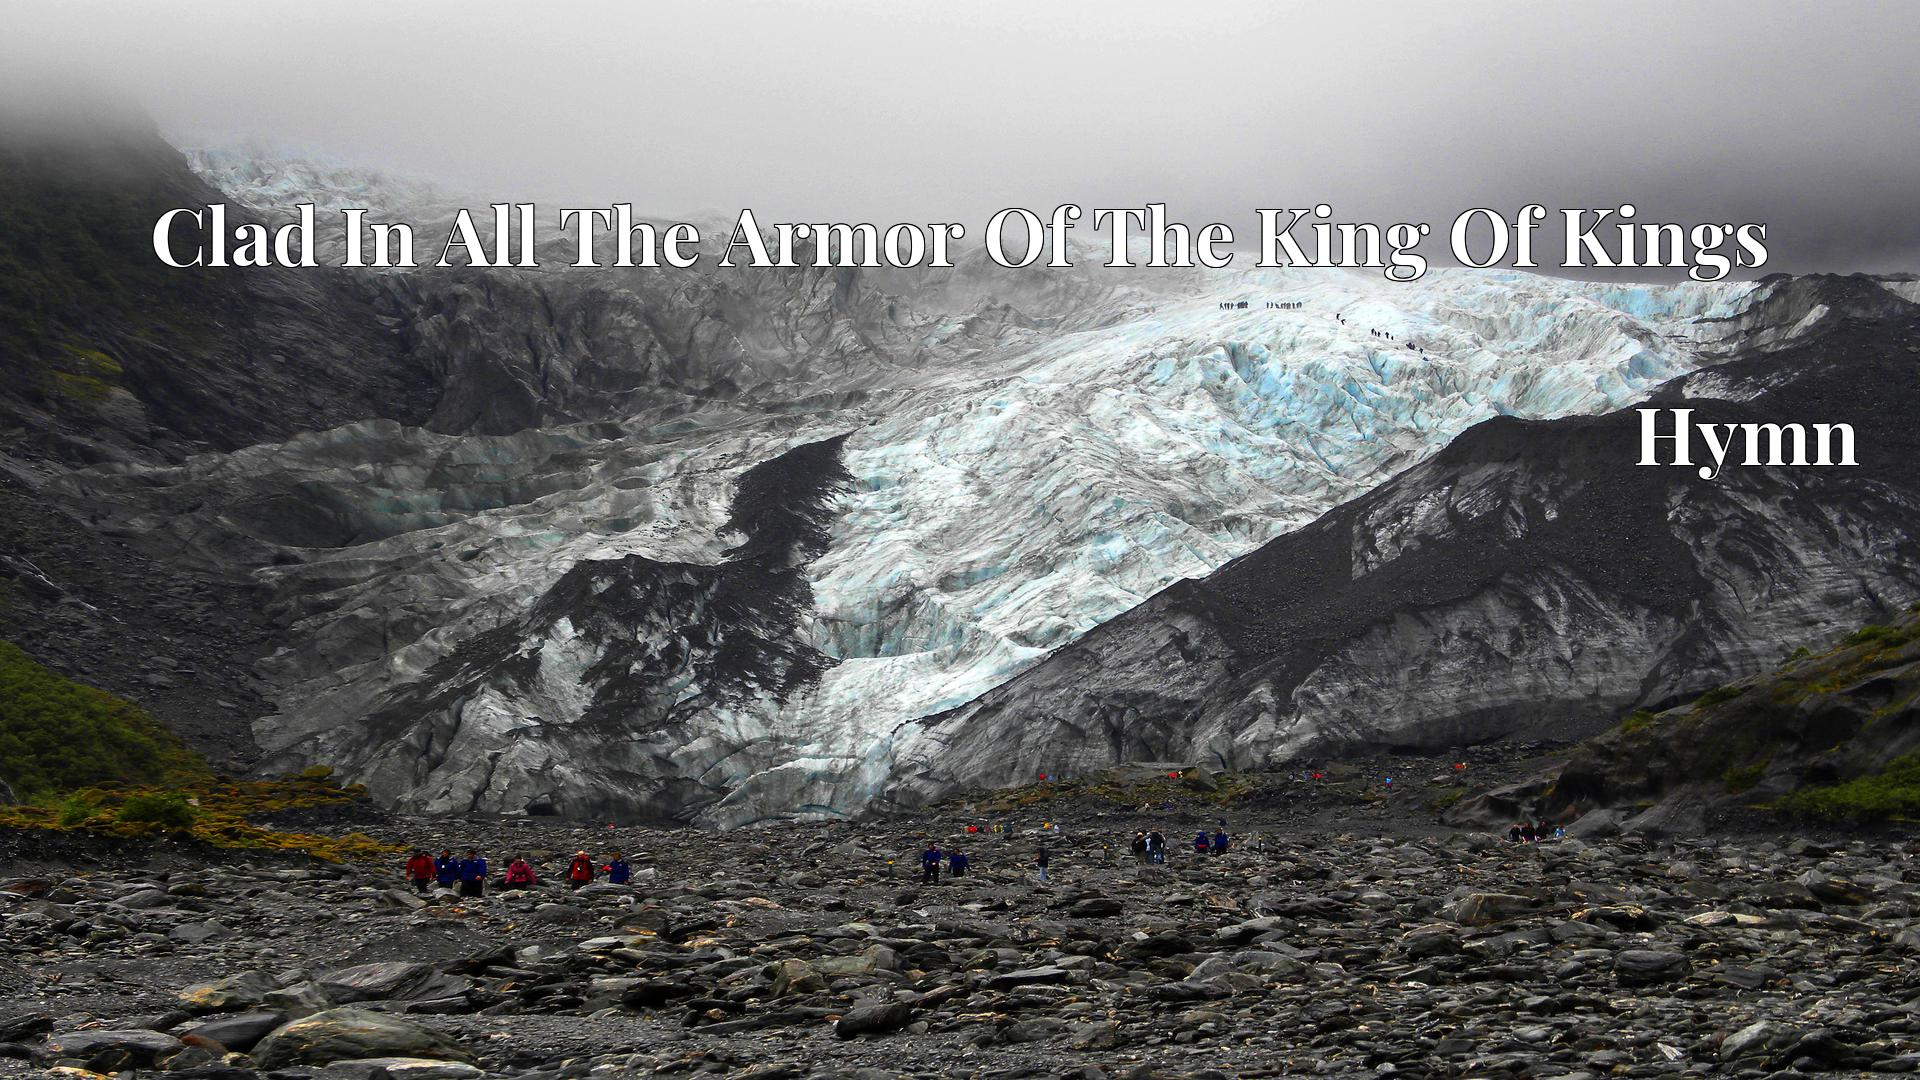 Clad In All The Armor Of The King Of Kings - Hymn